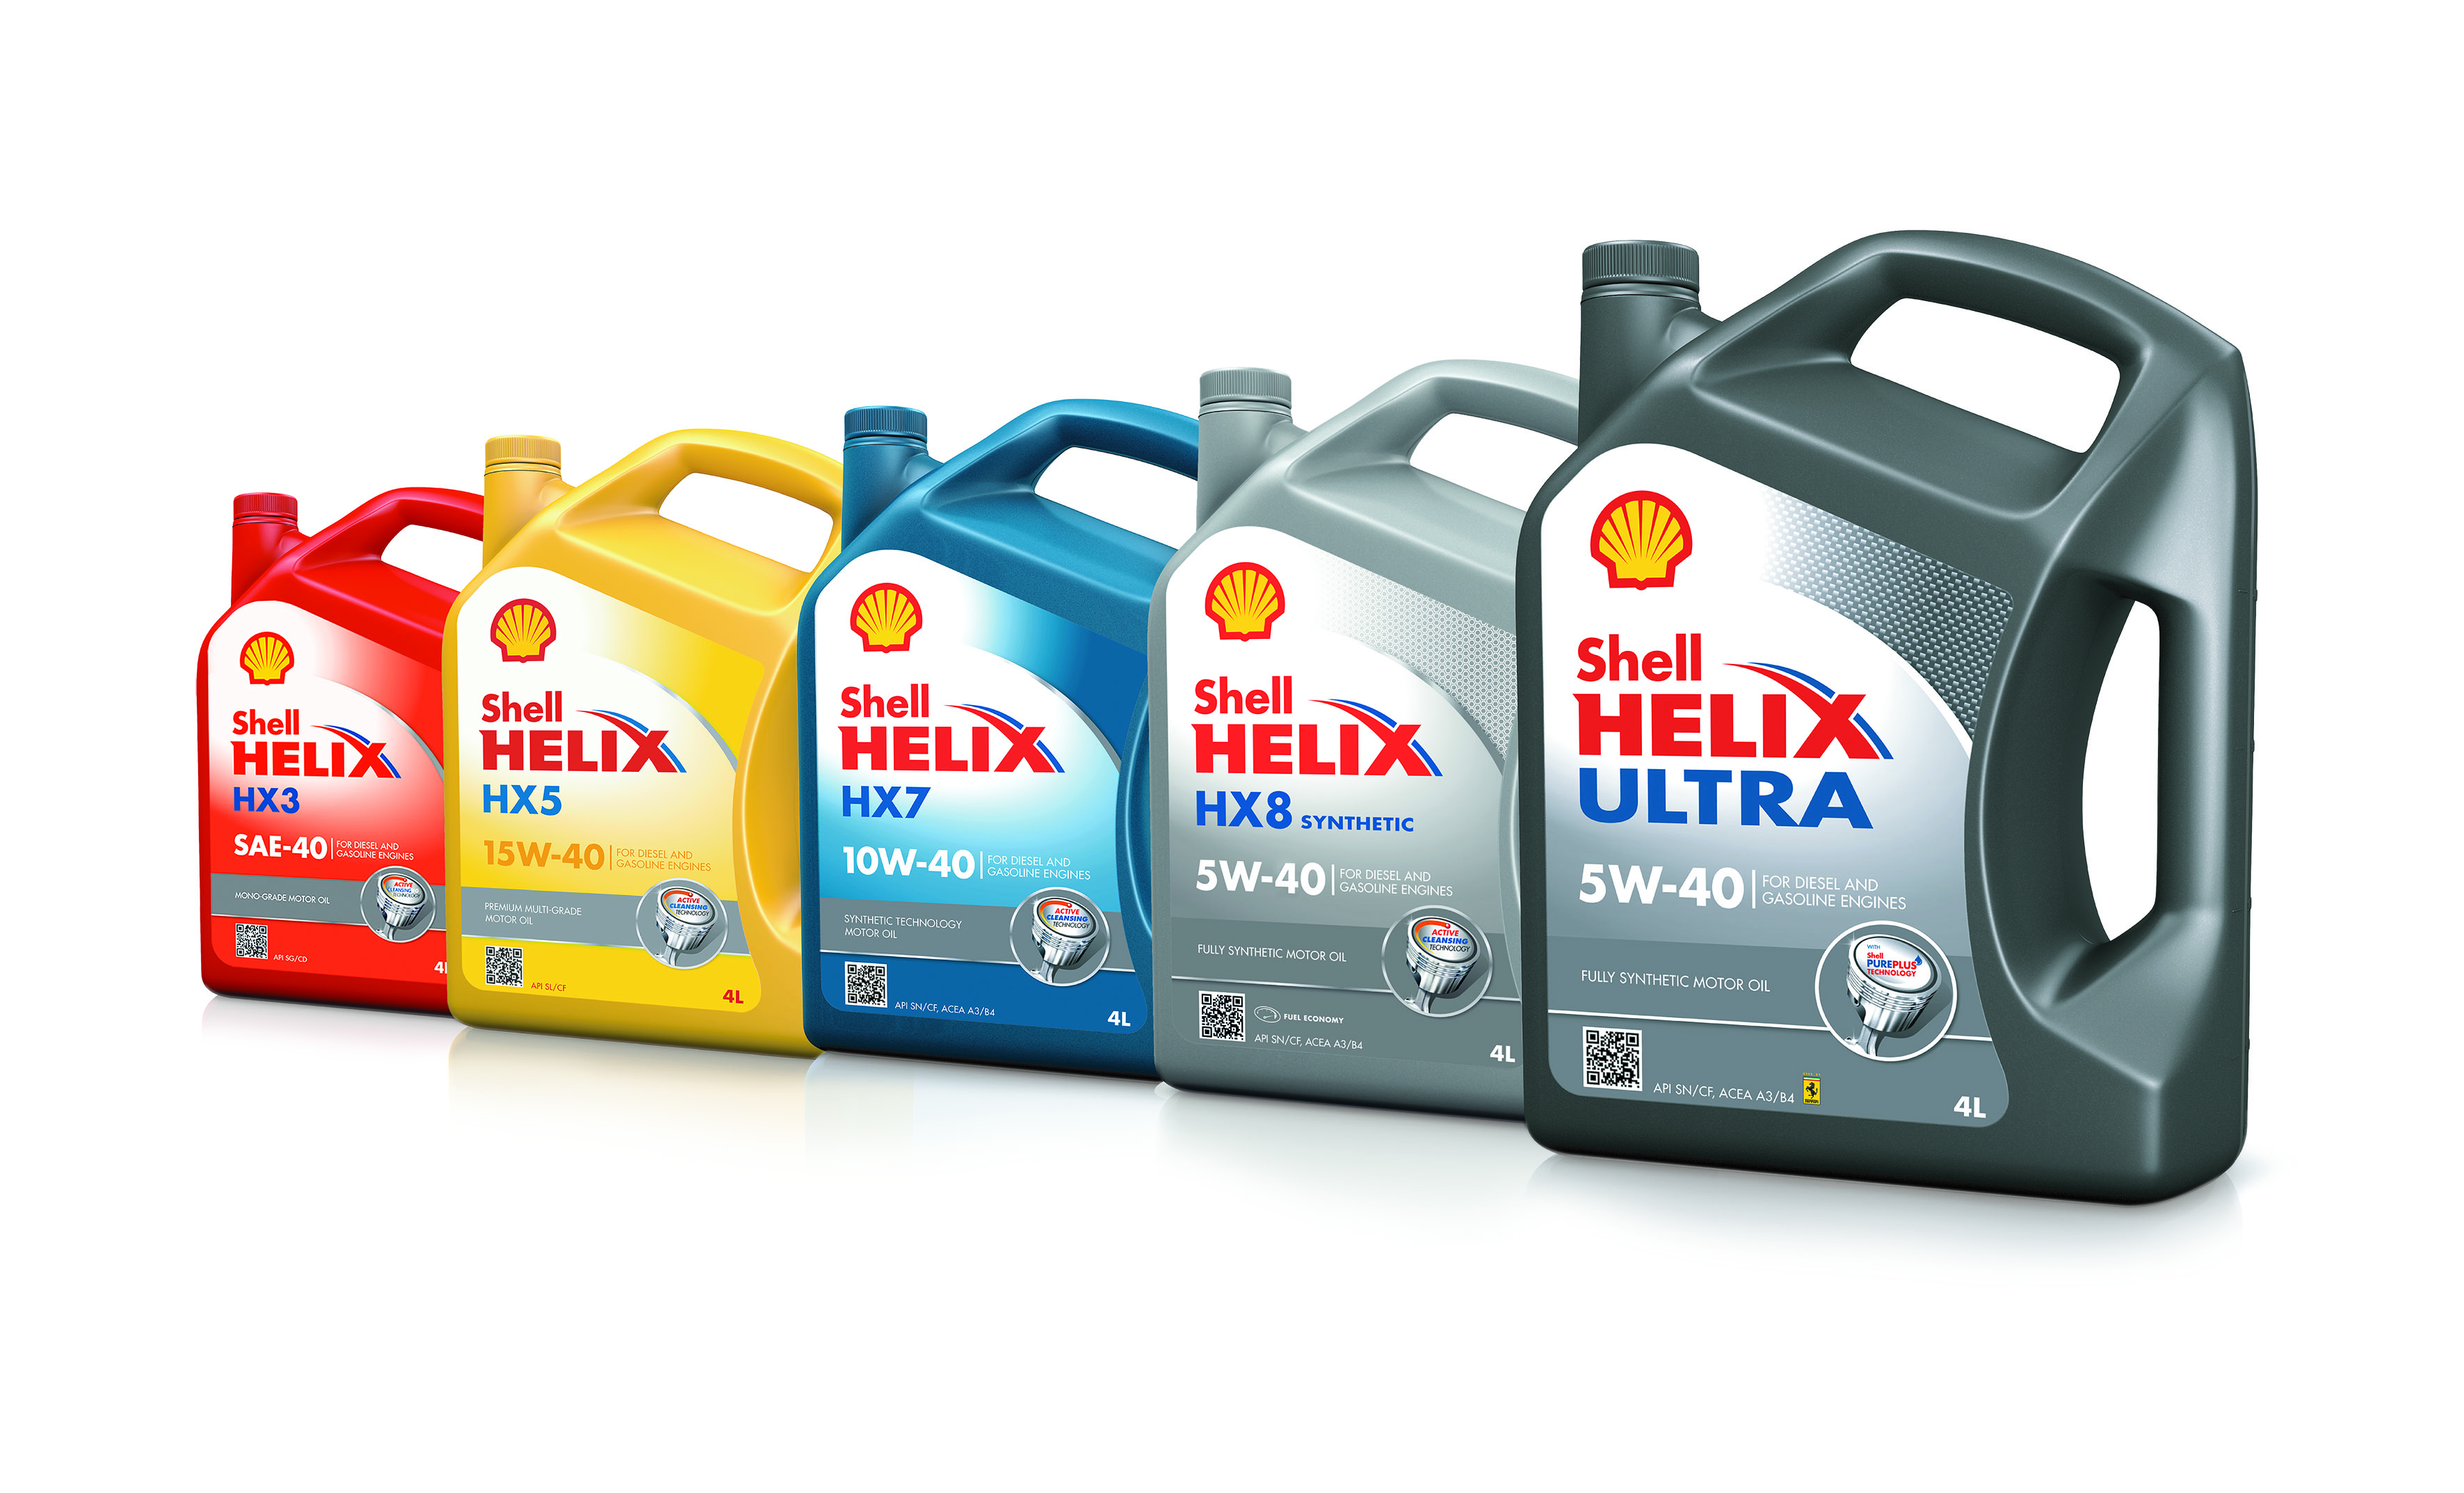 Helix Packs Pic